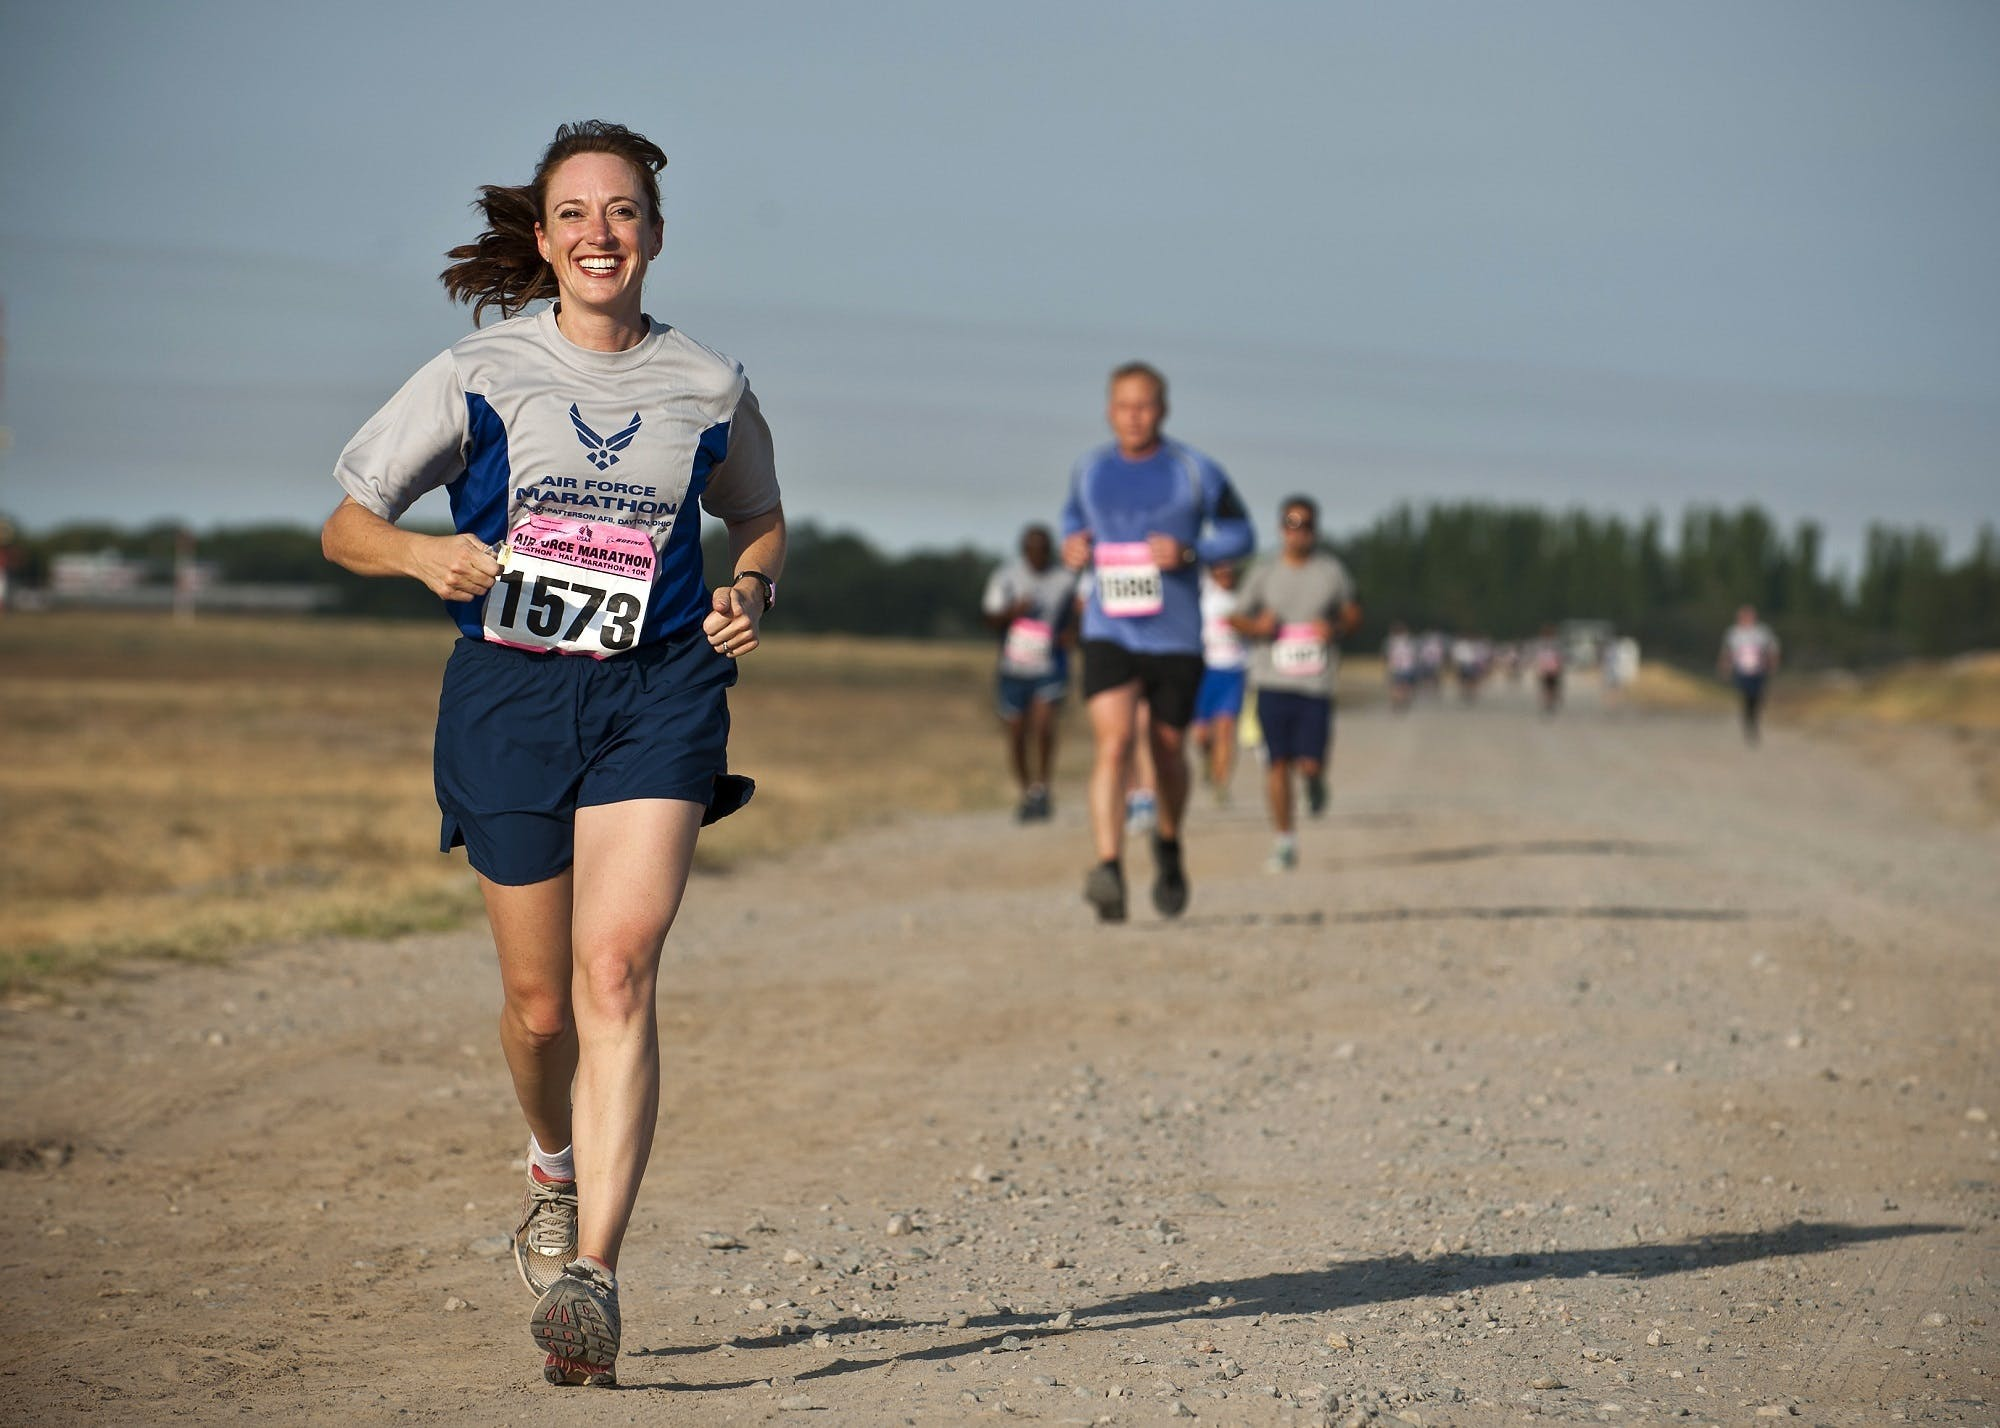 Woman in Gray Crew Neck Shirt Running on Brown Soil during Daytime